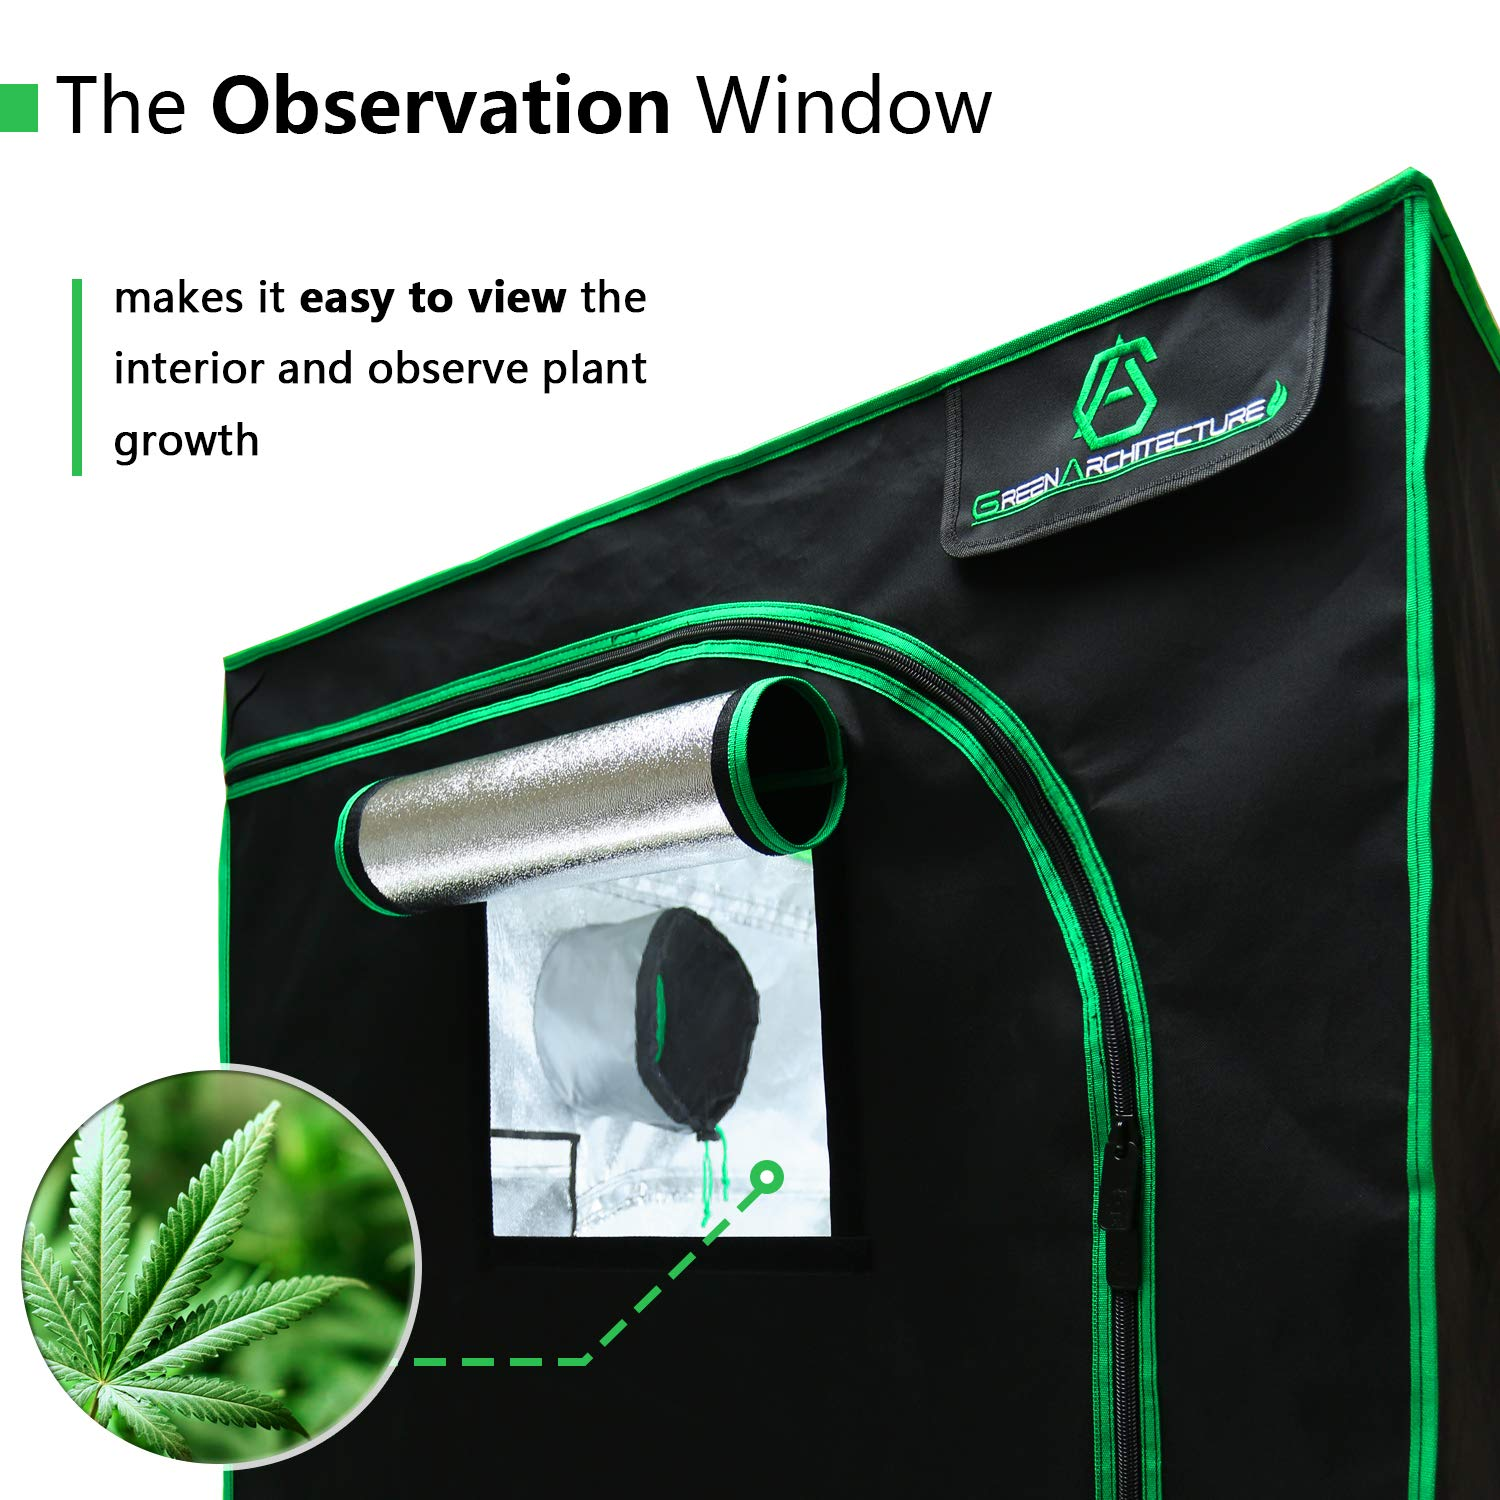 GA Grow Tent,94x48x80 Reflective Mylar Hydroponic Grow Tent with Observation Window and Waterproof Floor Tray for Indoor Plant Growing.4x8 by GreenArchitecture (Image #3)